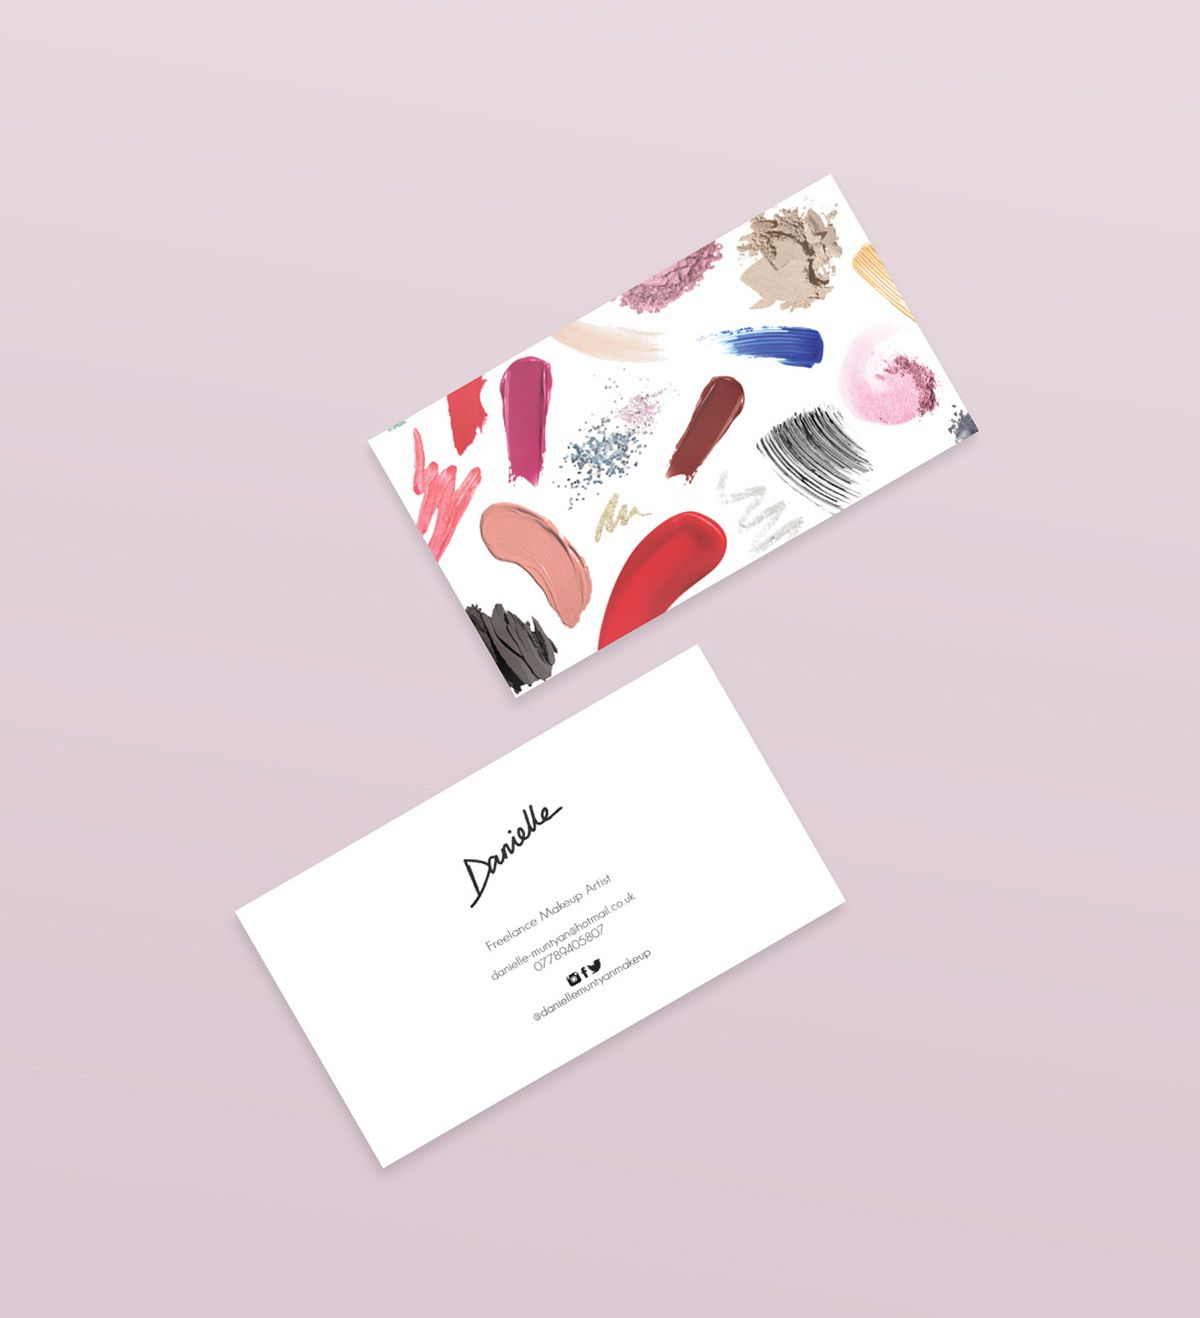 Makeup Artist Business Cards on Behance | Ideas | Pinterest ...